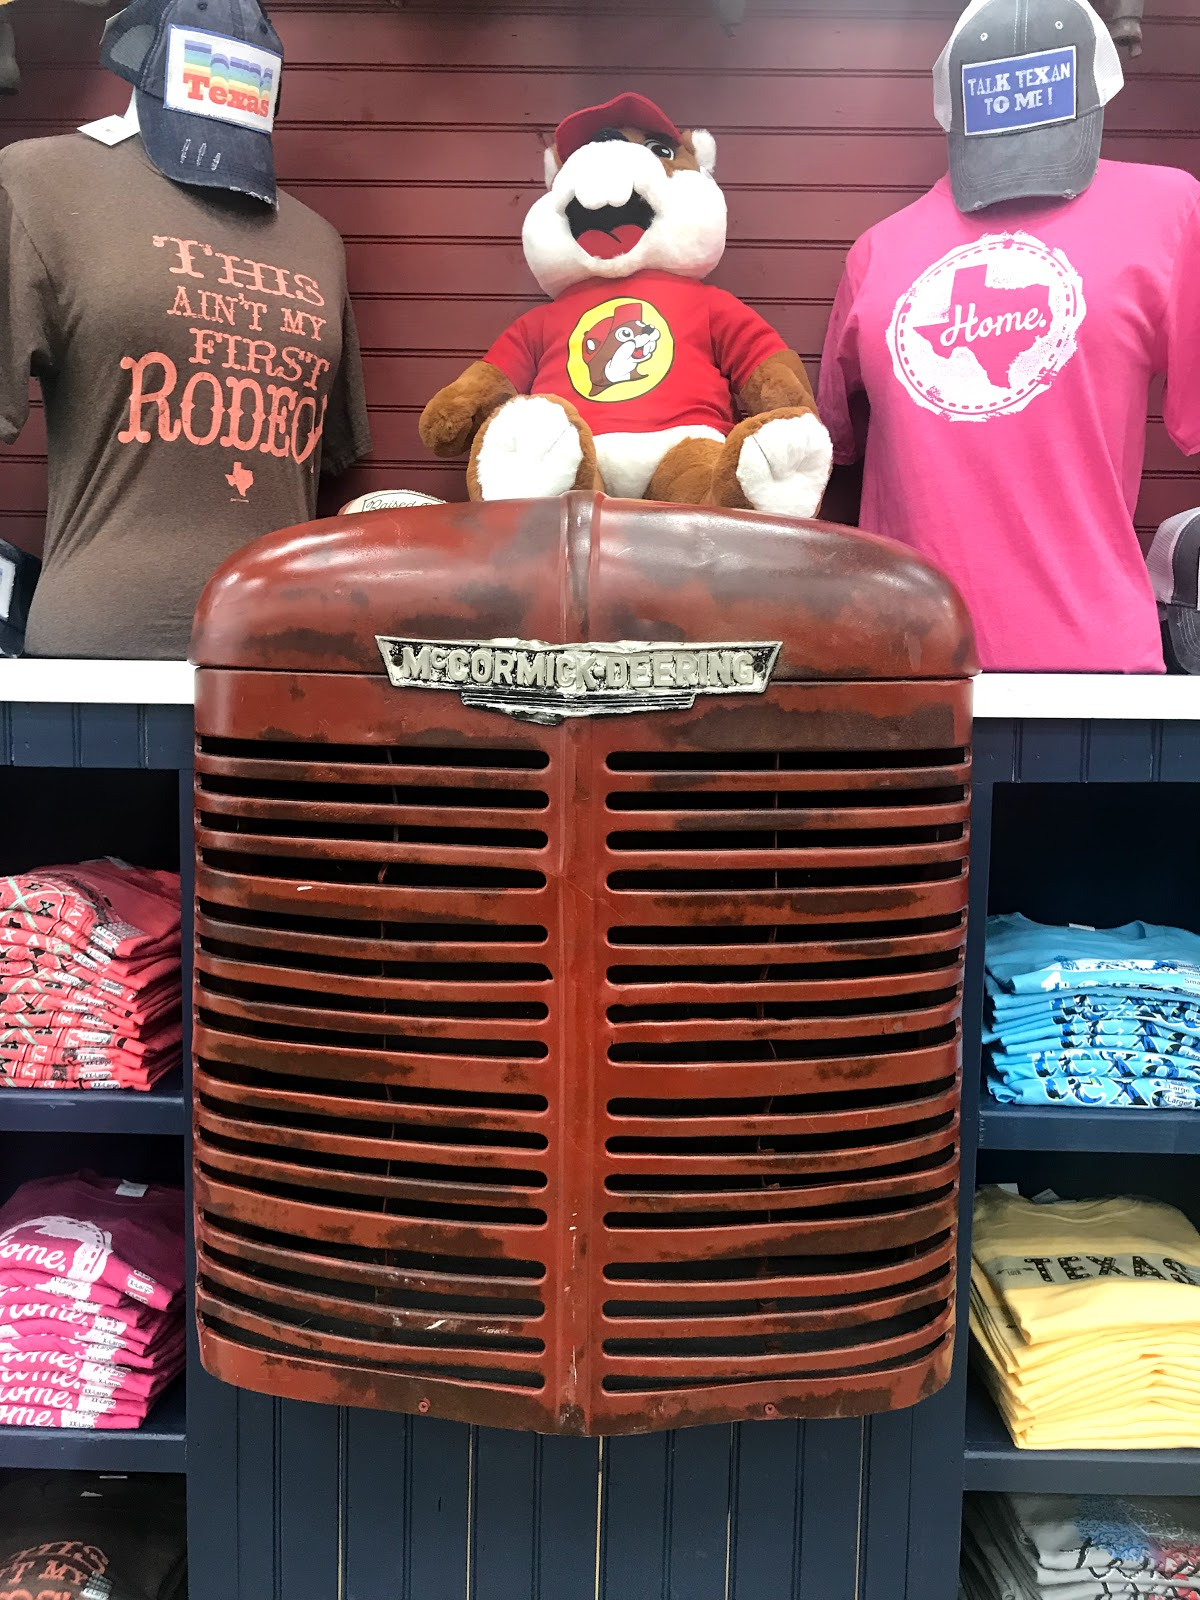 Image: truck front end with beavers and t-shirts being sold at Bucee gas station